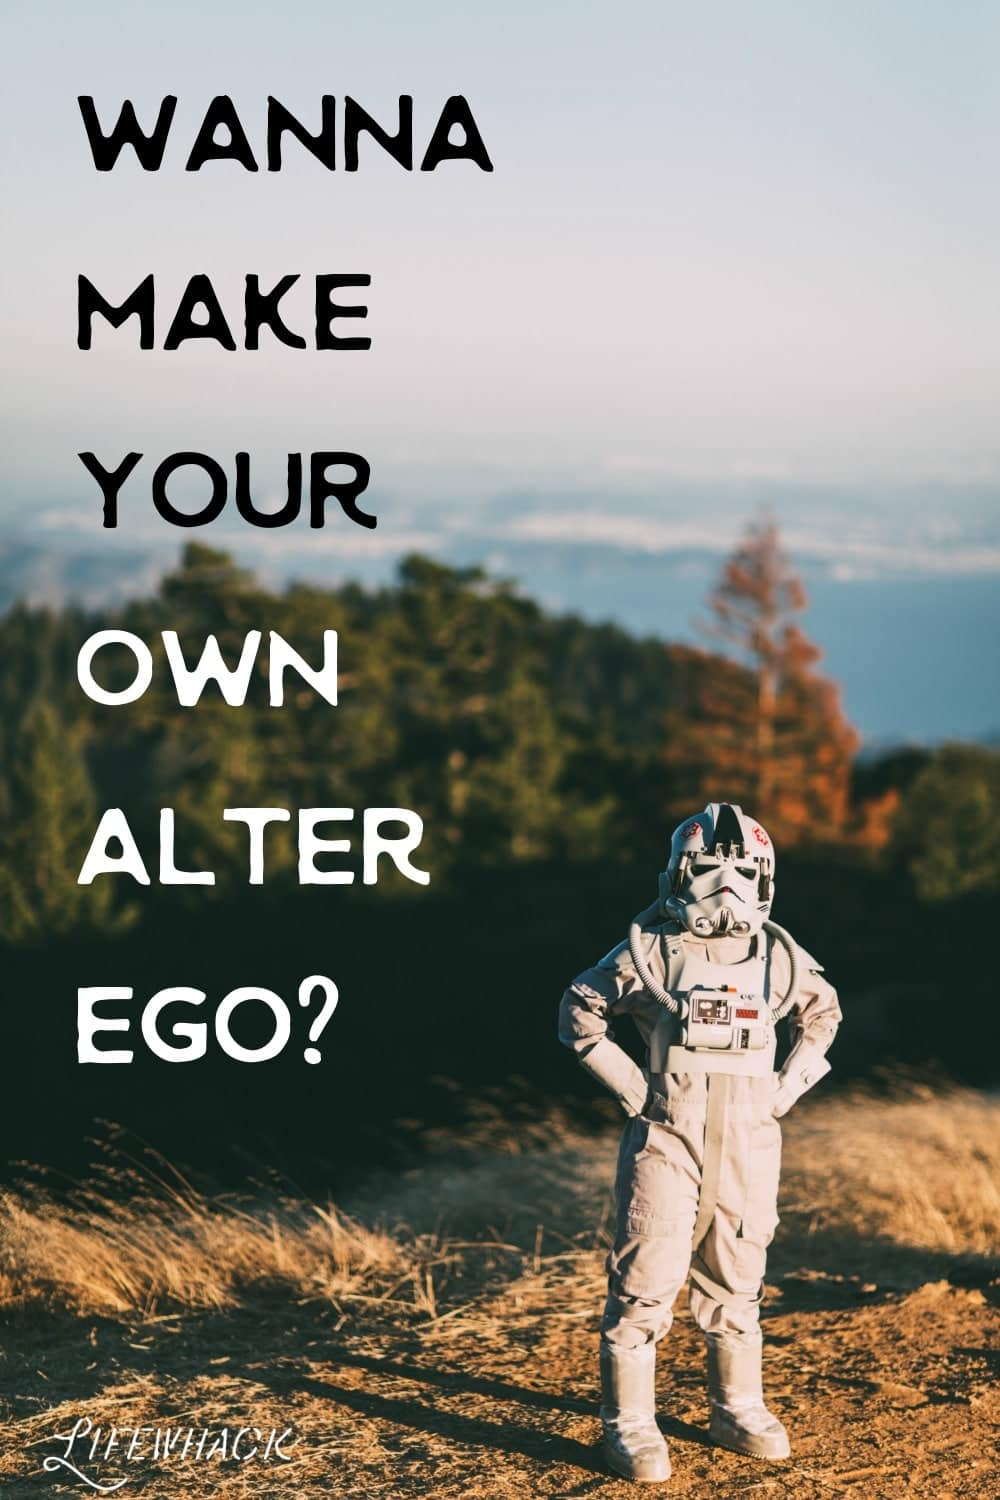 Make your own alter ego